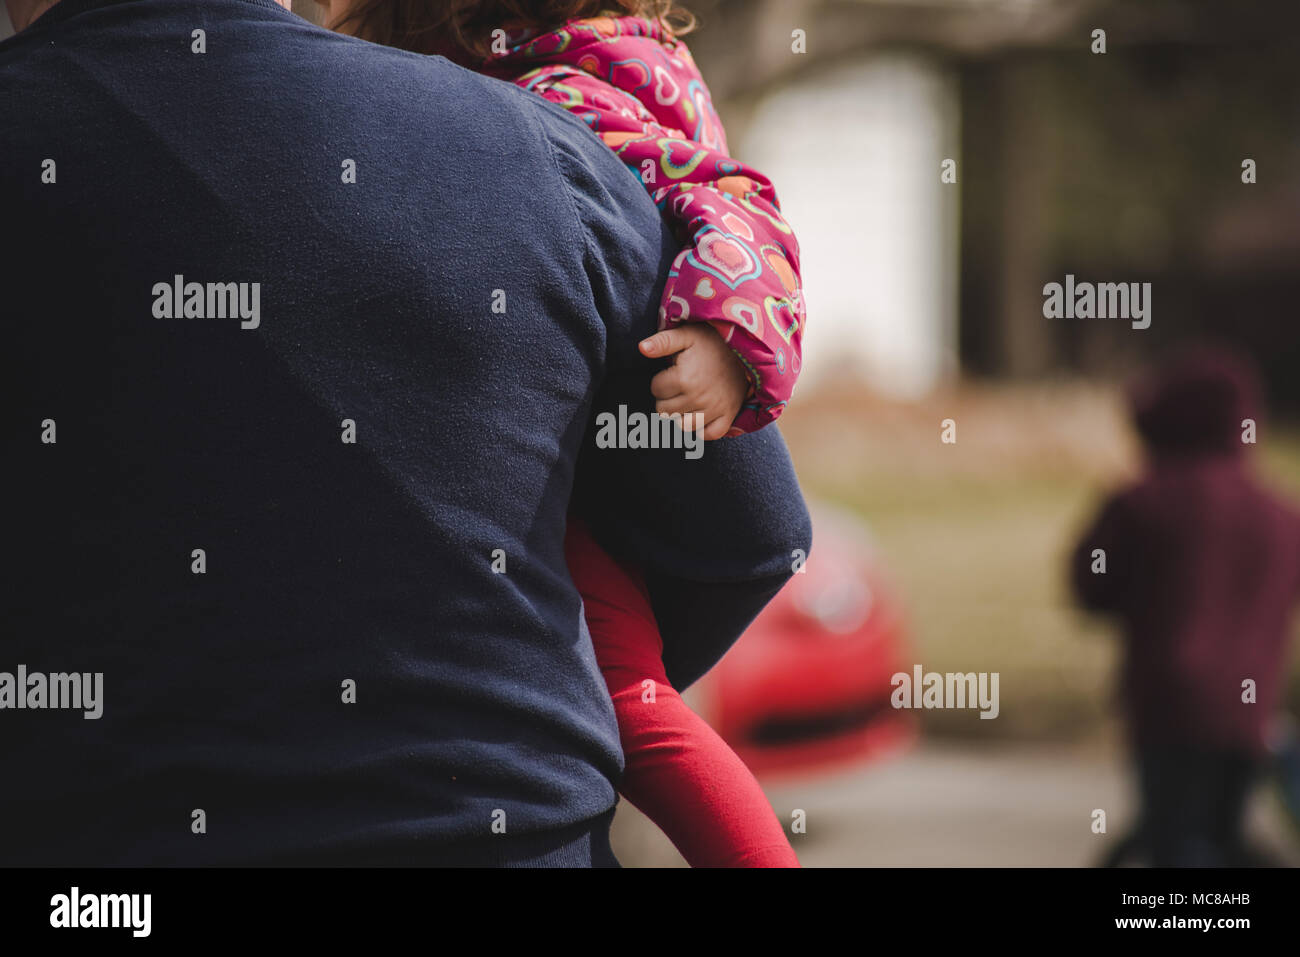 A child being held by her father. - Stock Image